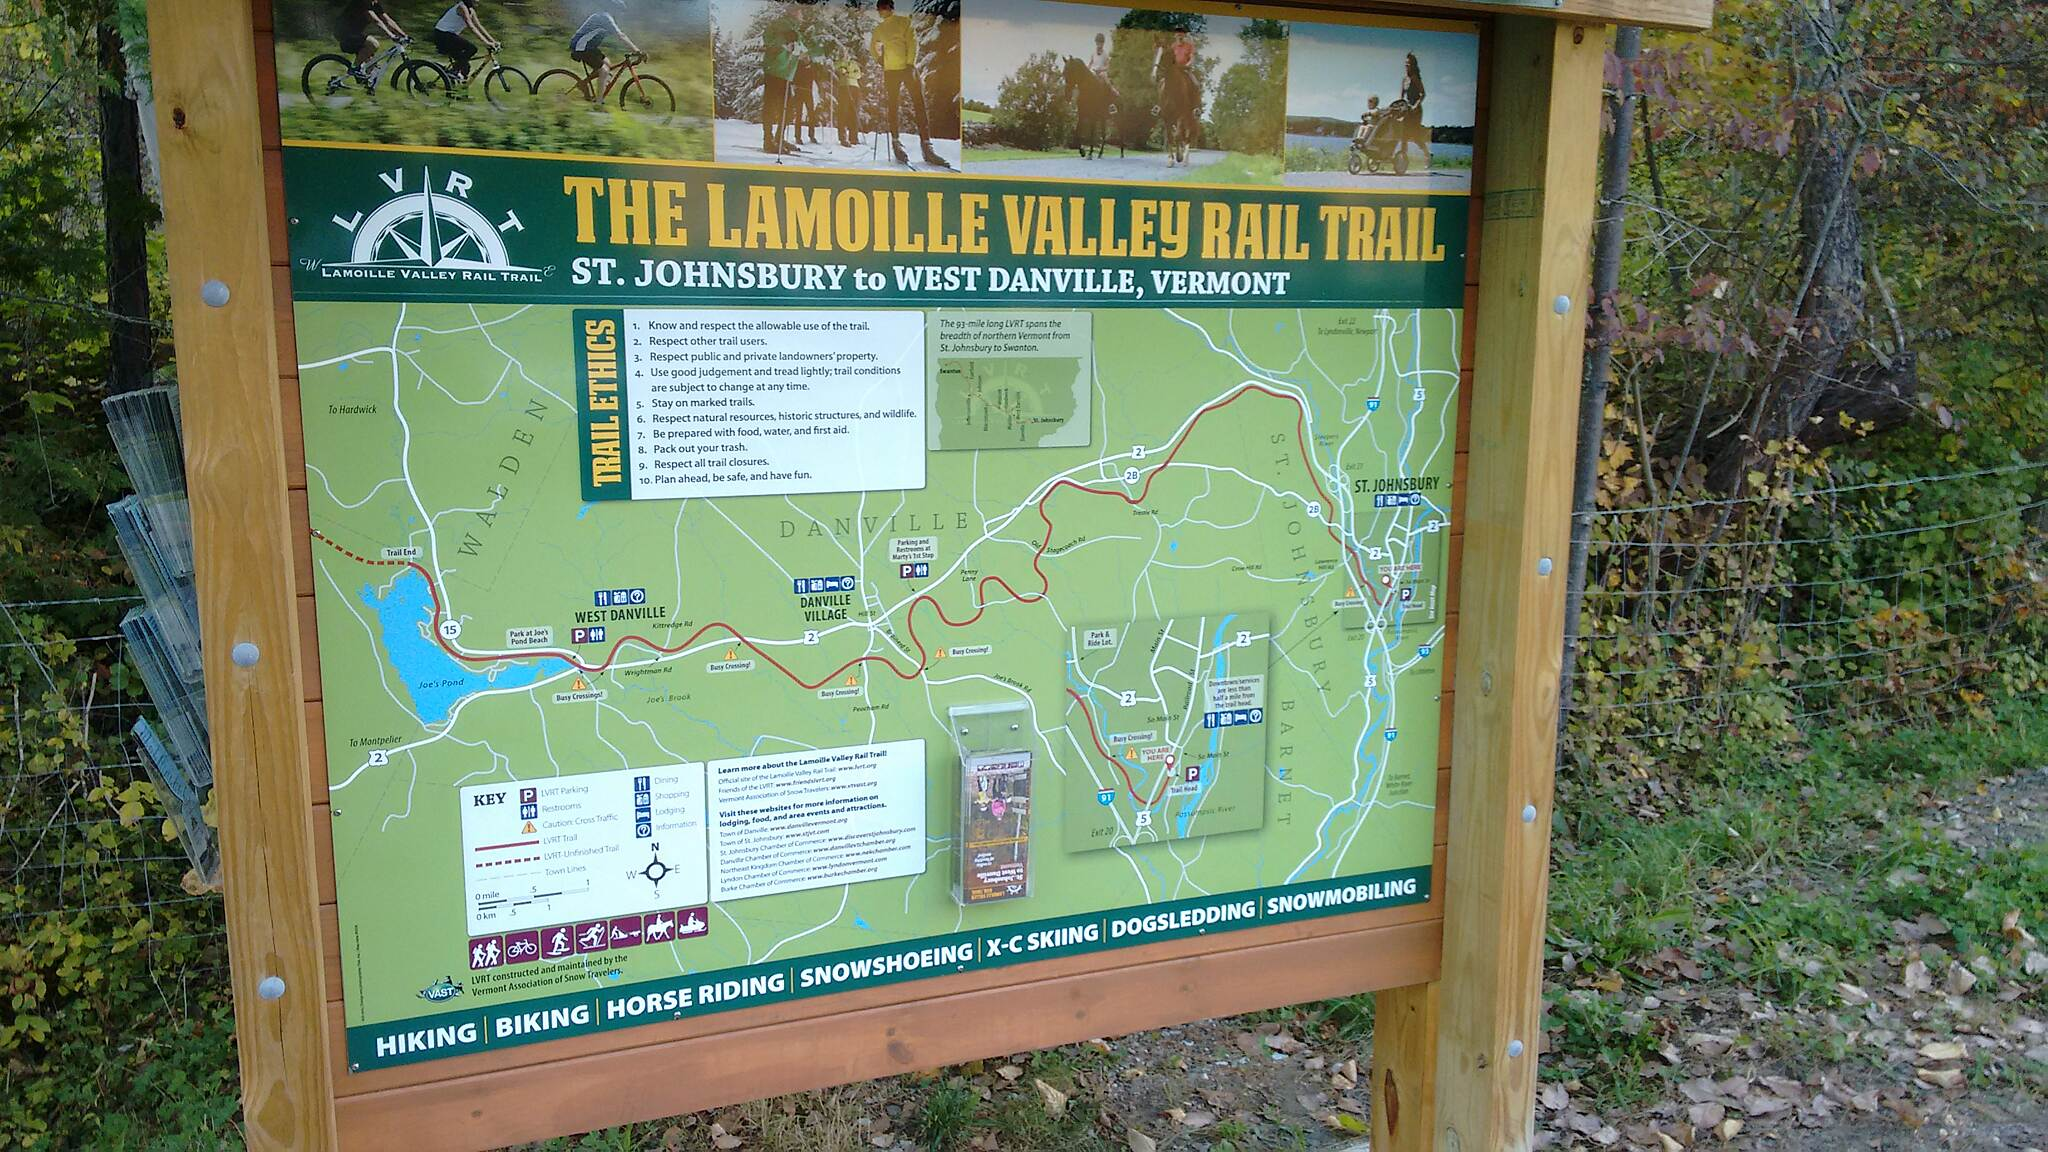 Lamoille Valley Rail Trail Kiosk - St Johnsbury Trailhead Info Kiosk at the Eastern end of the LVRT.  Plenty of free brochures are available.  There is parking for approximately 15-20 vehicles, the lot is dirt and the parking patterns change day to day...  Park head-in works best capacity